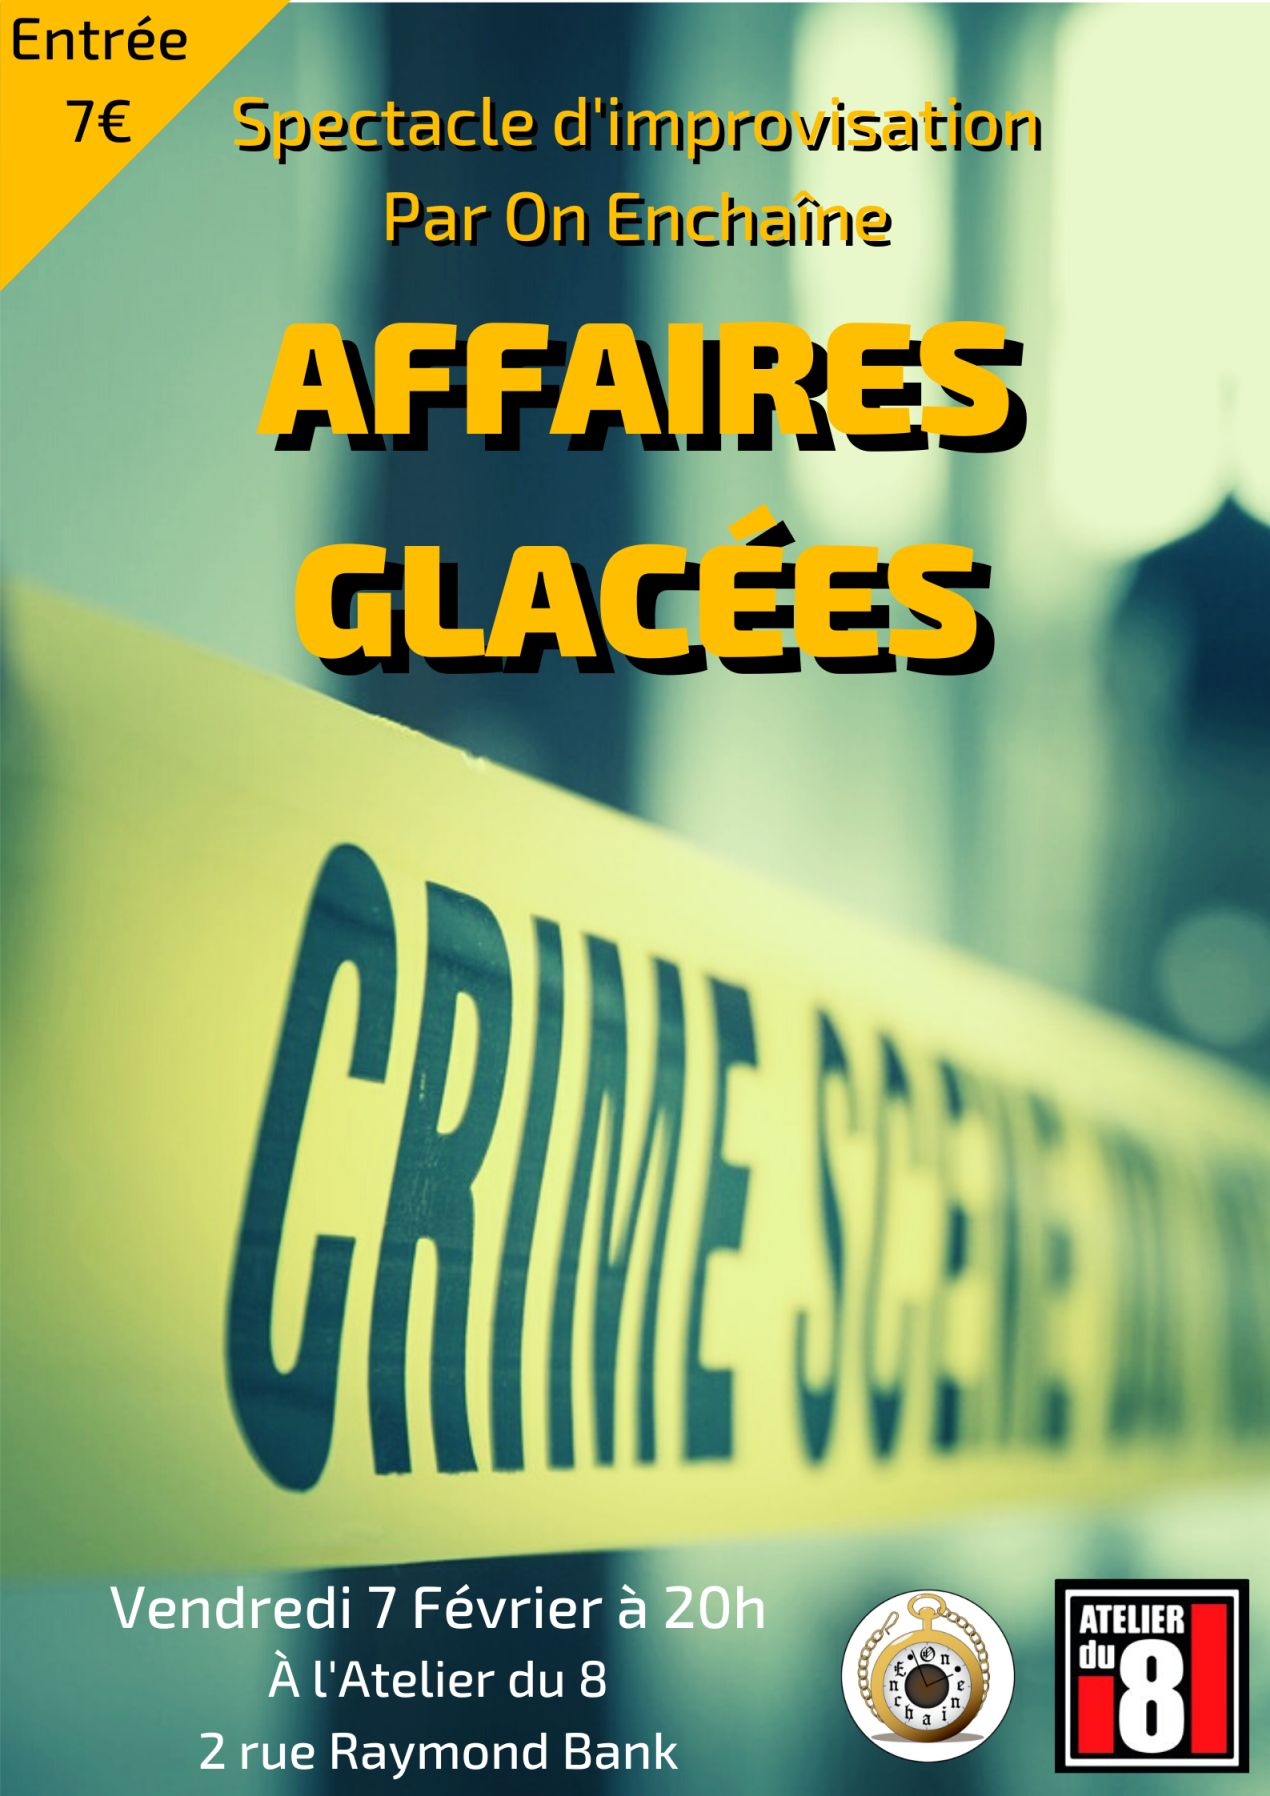 """Affaires Glacées"" par la troupe On Enchaine"